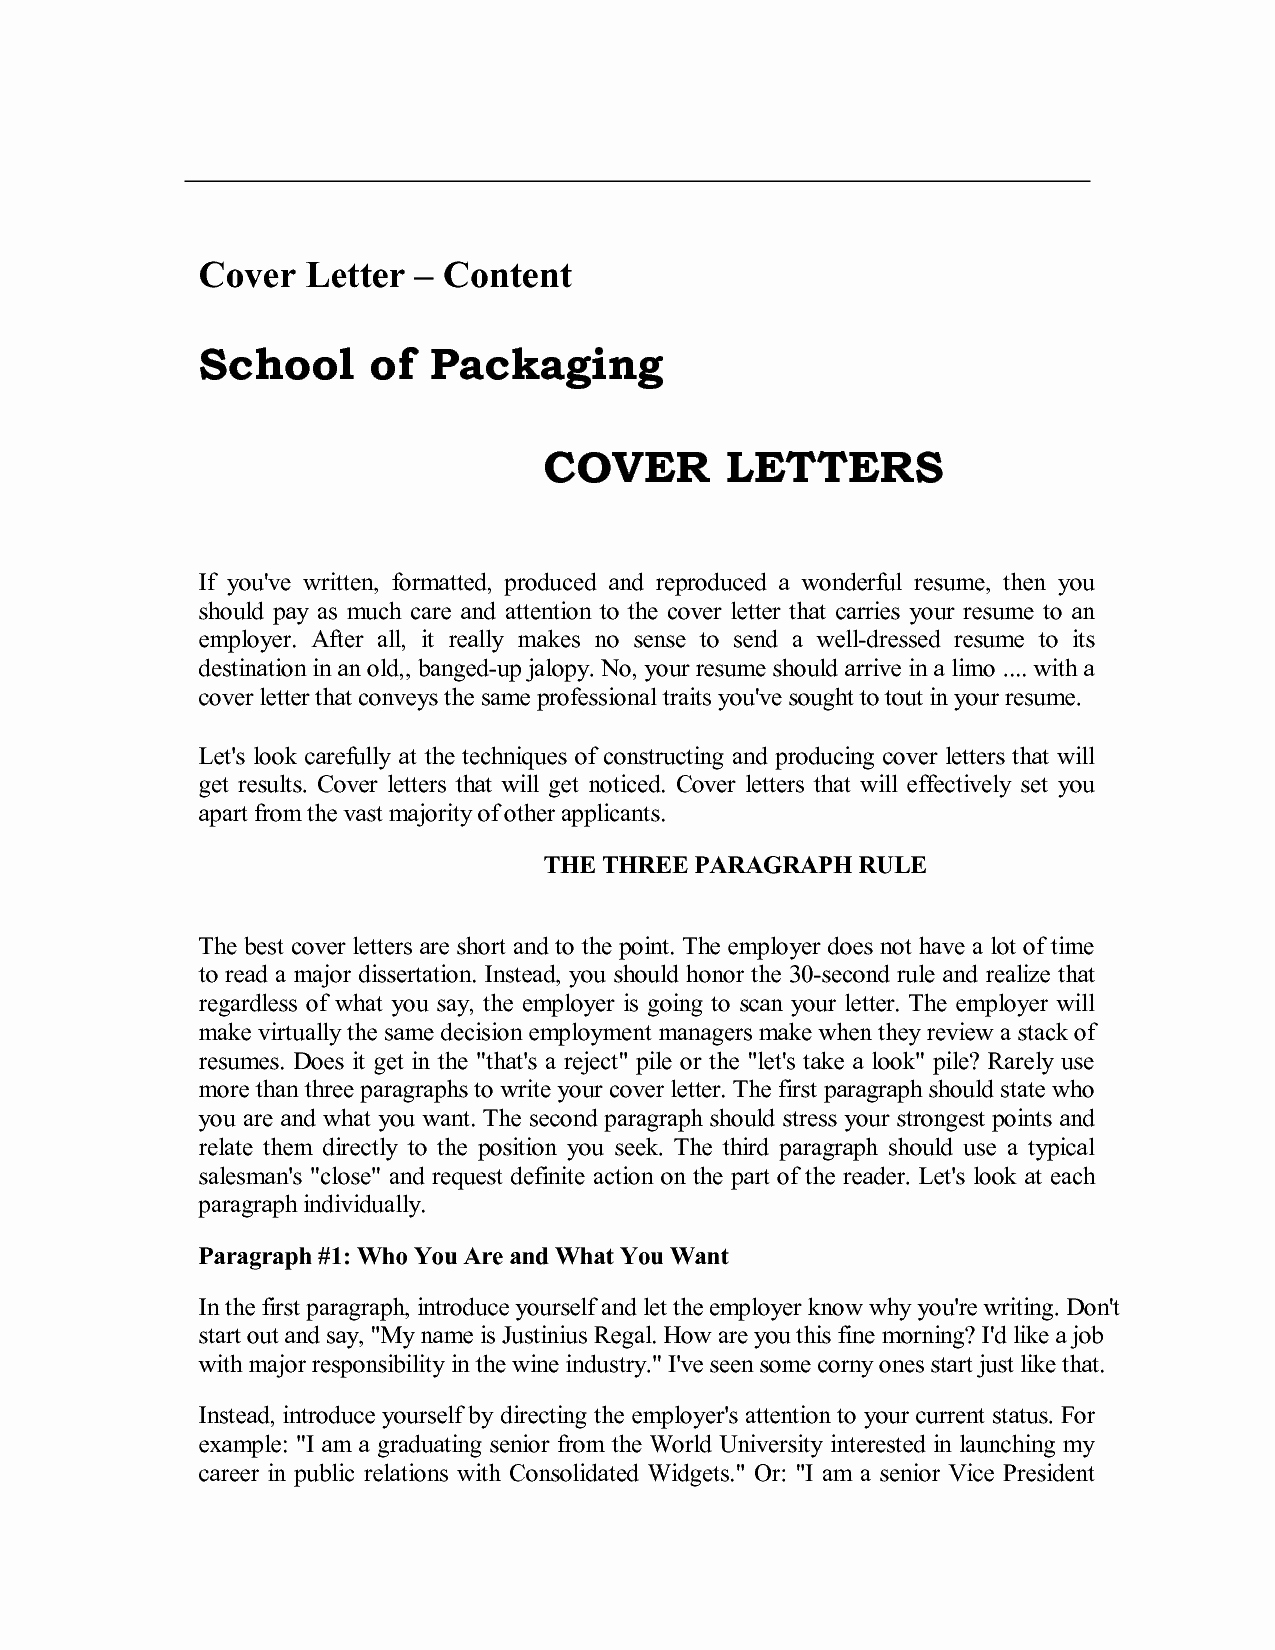 Cover Letter Of A Resume Fresh Cover Letters Pdf with Resumecover Letter for Resume Cover